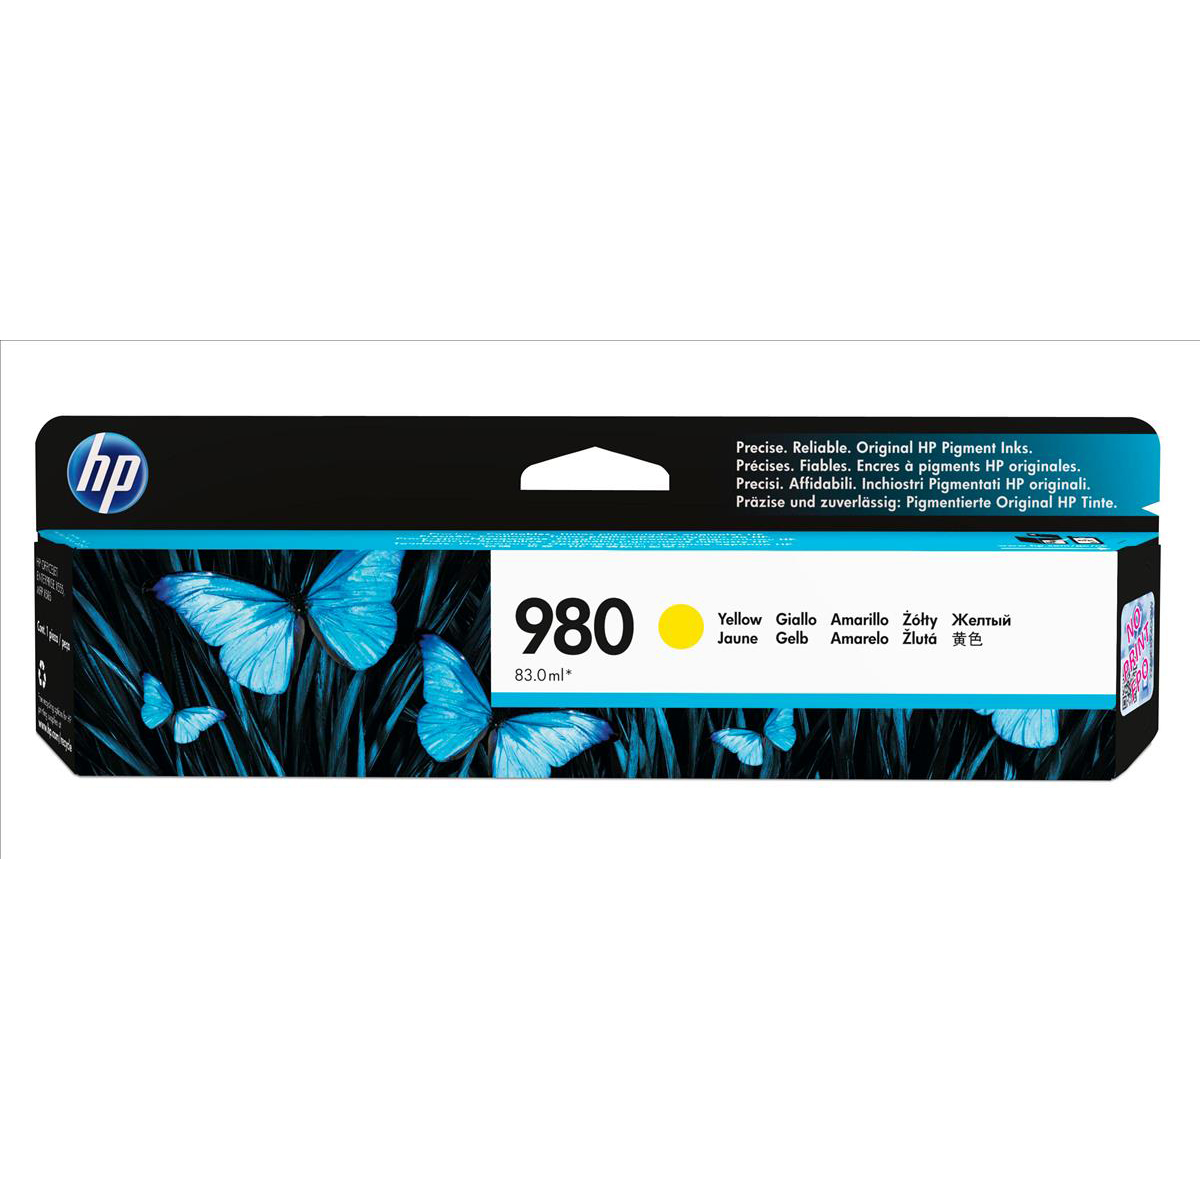 Hewlett Packard HP No.980 Inkjet Cartridge Page Life 6600pp Cartridge Yellow Ref D8J09A